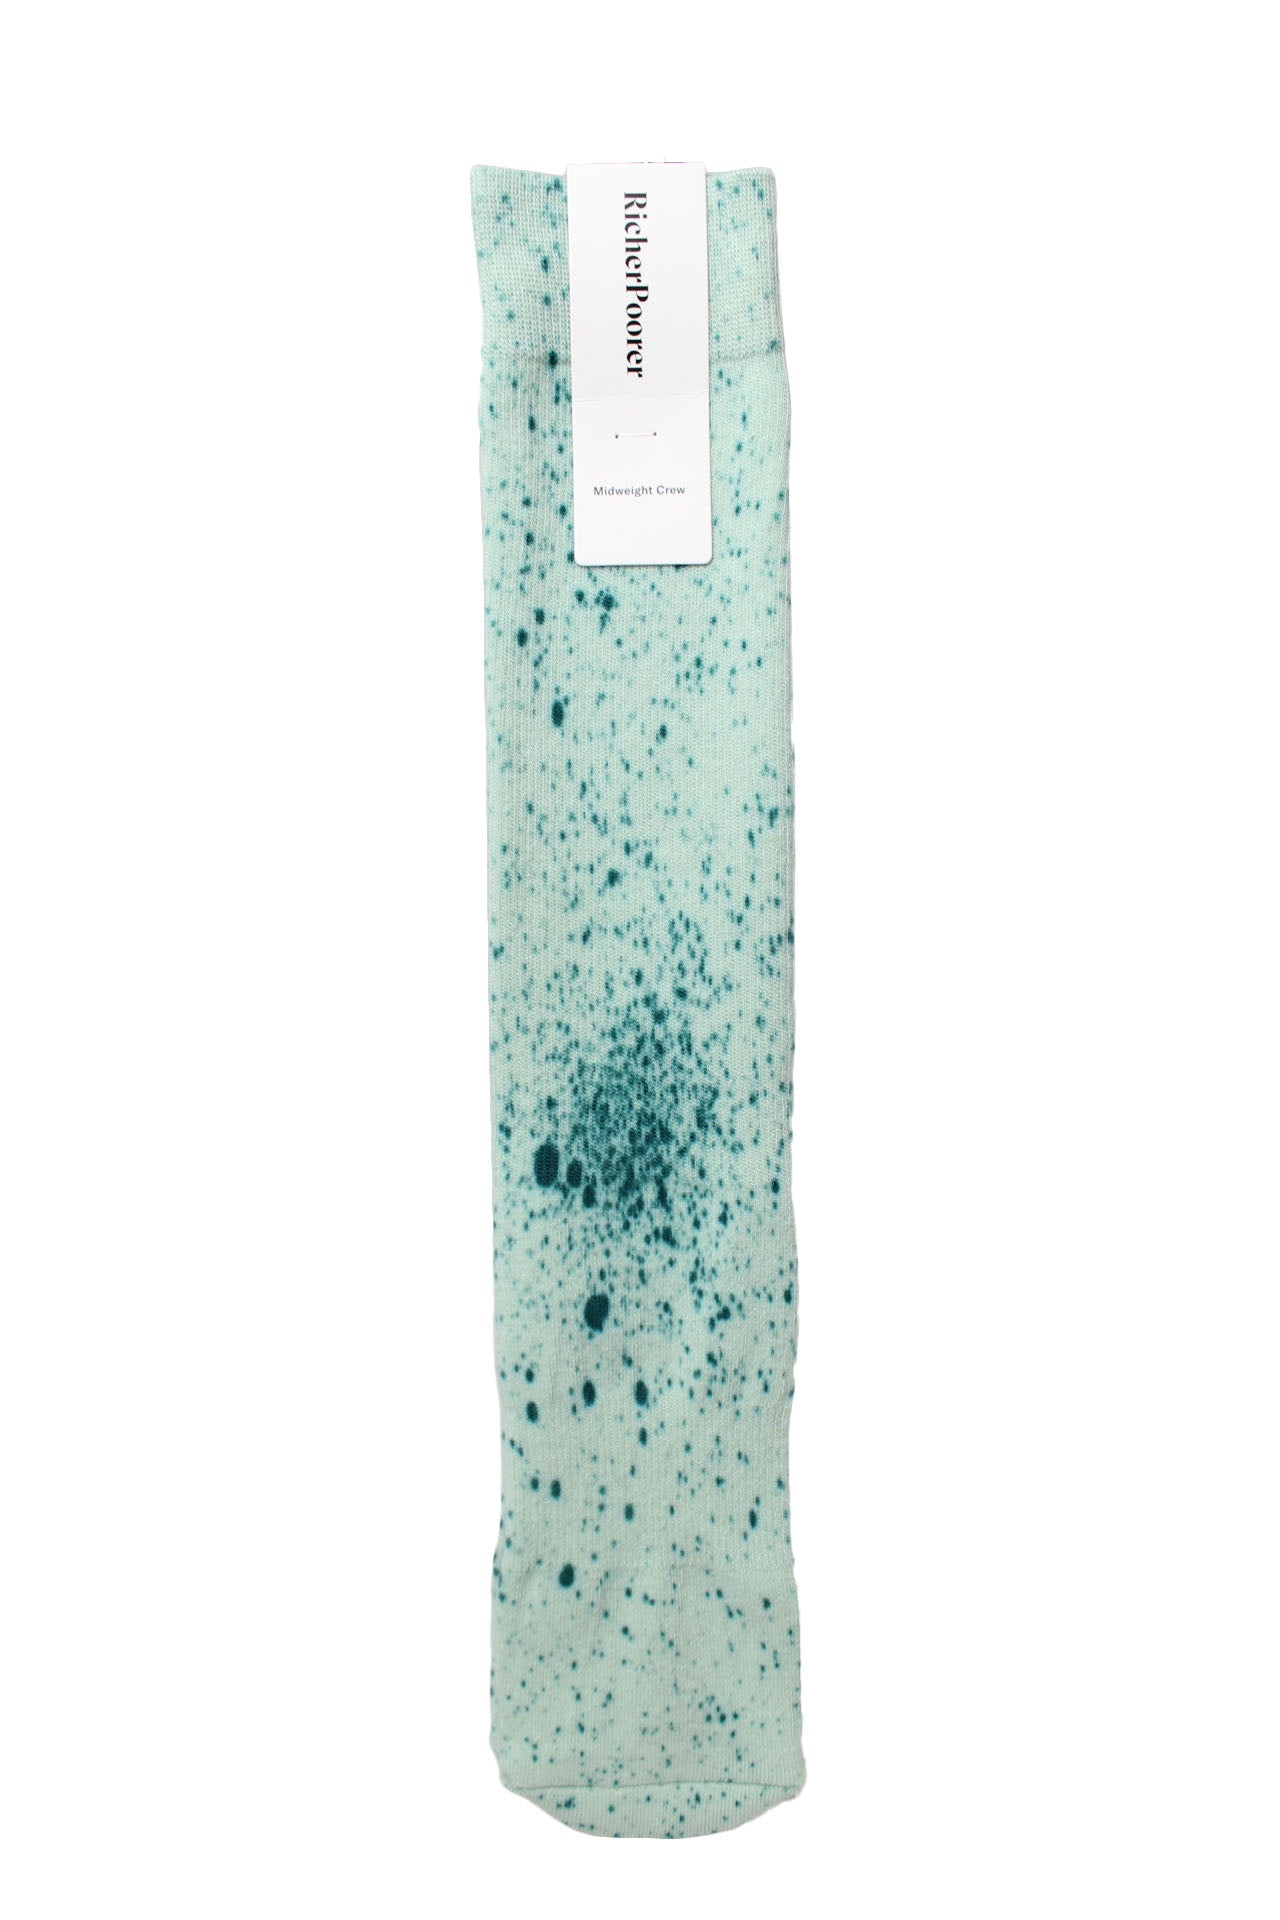 aqua splatter mid-weight crew sock by richer poorer.